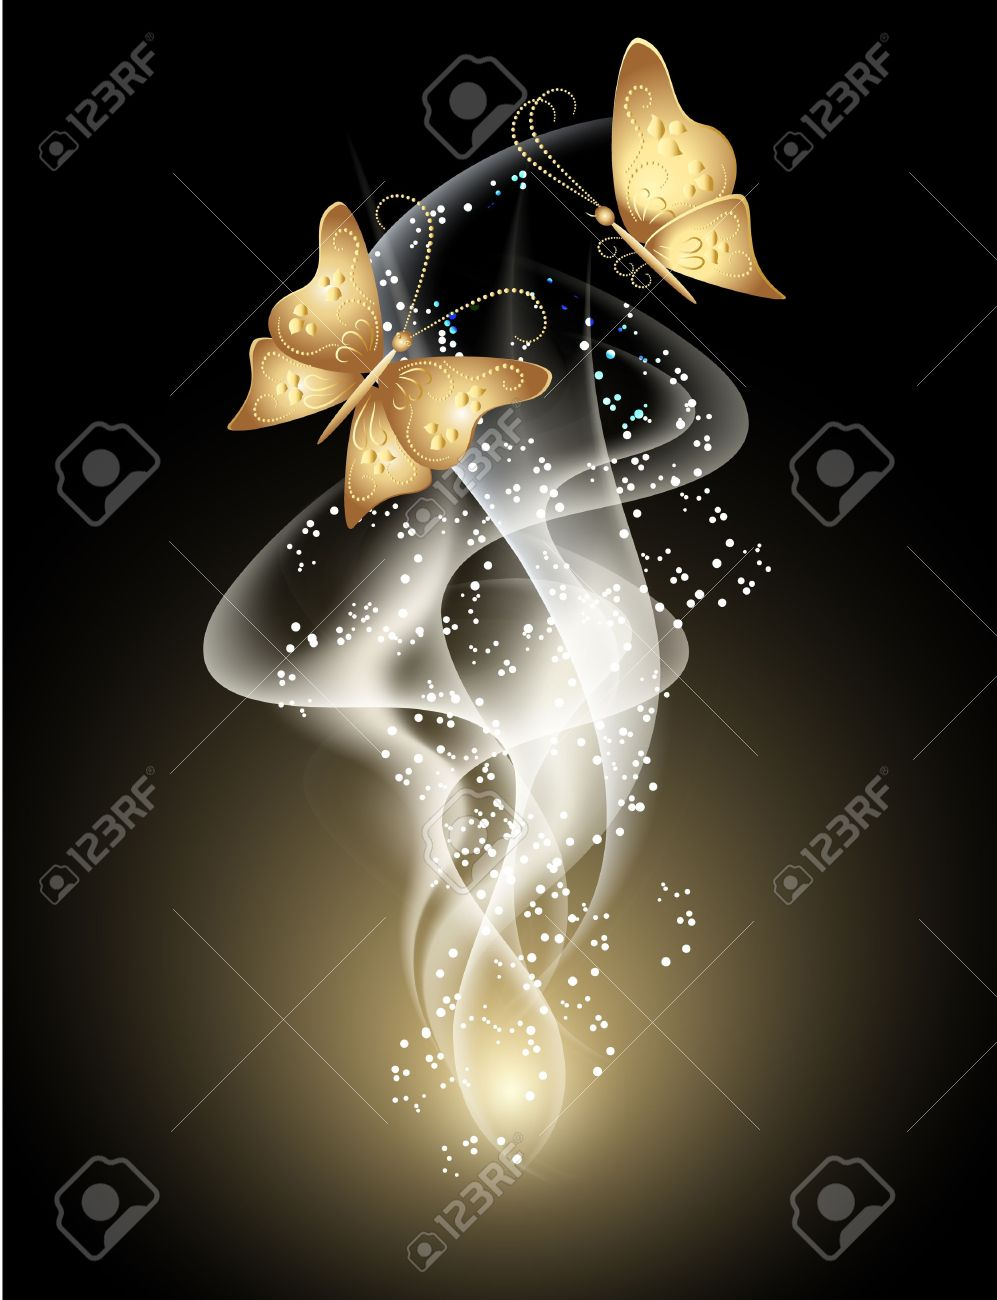 Glowing background with smoke, stars and butterfly - 13781930